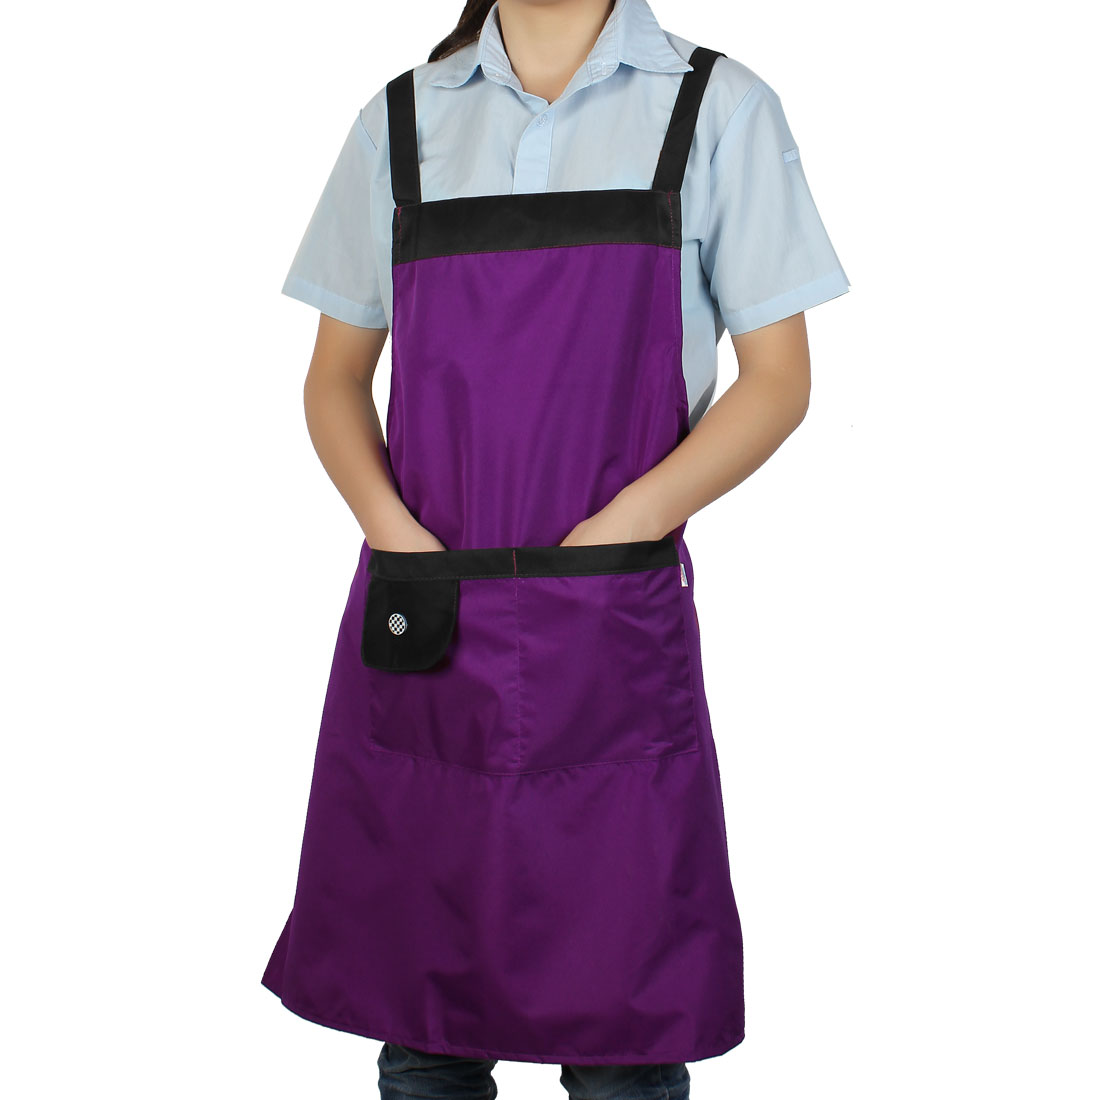 Household Restaurant Kitchen Waterproof Black Purple Cooking Apron Bib Dress w Pockets